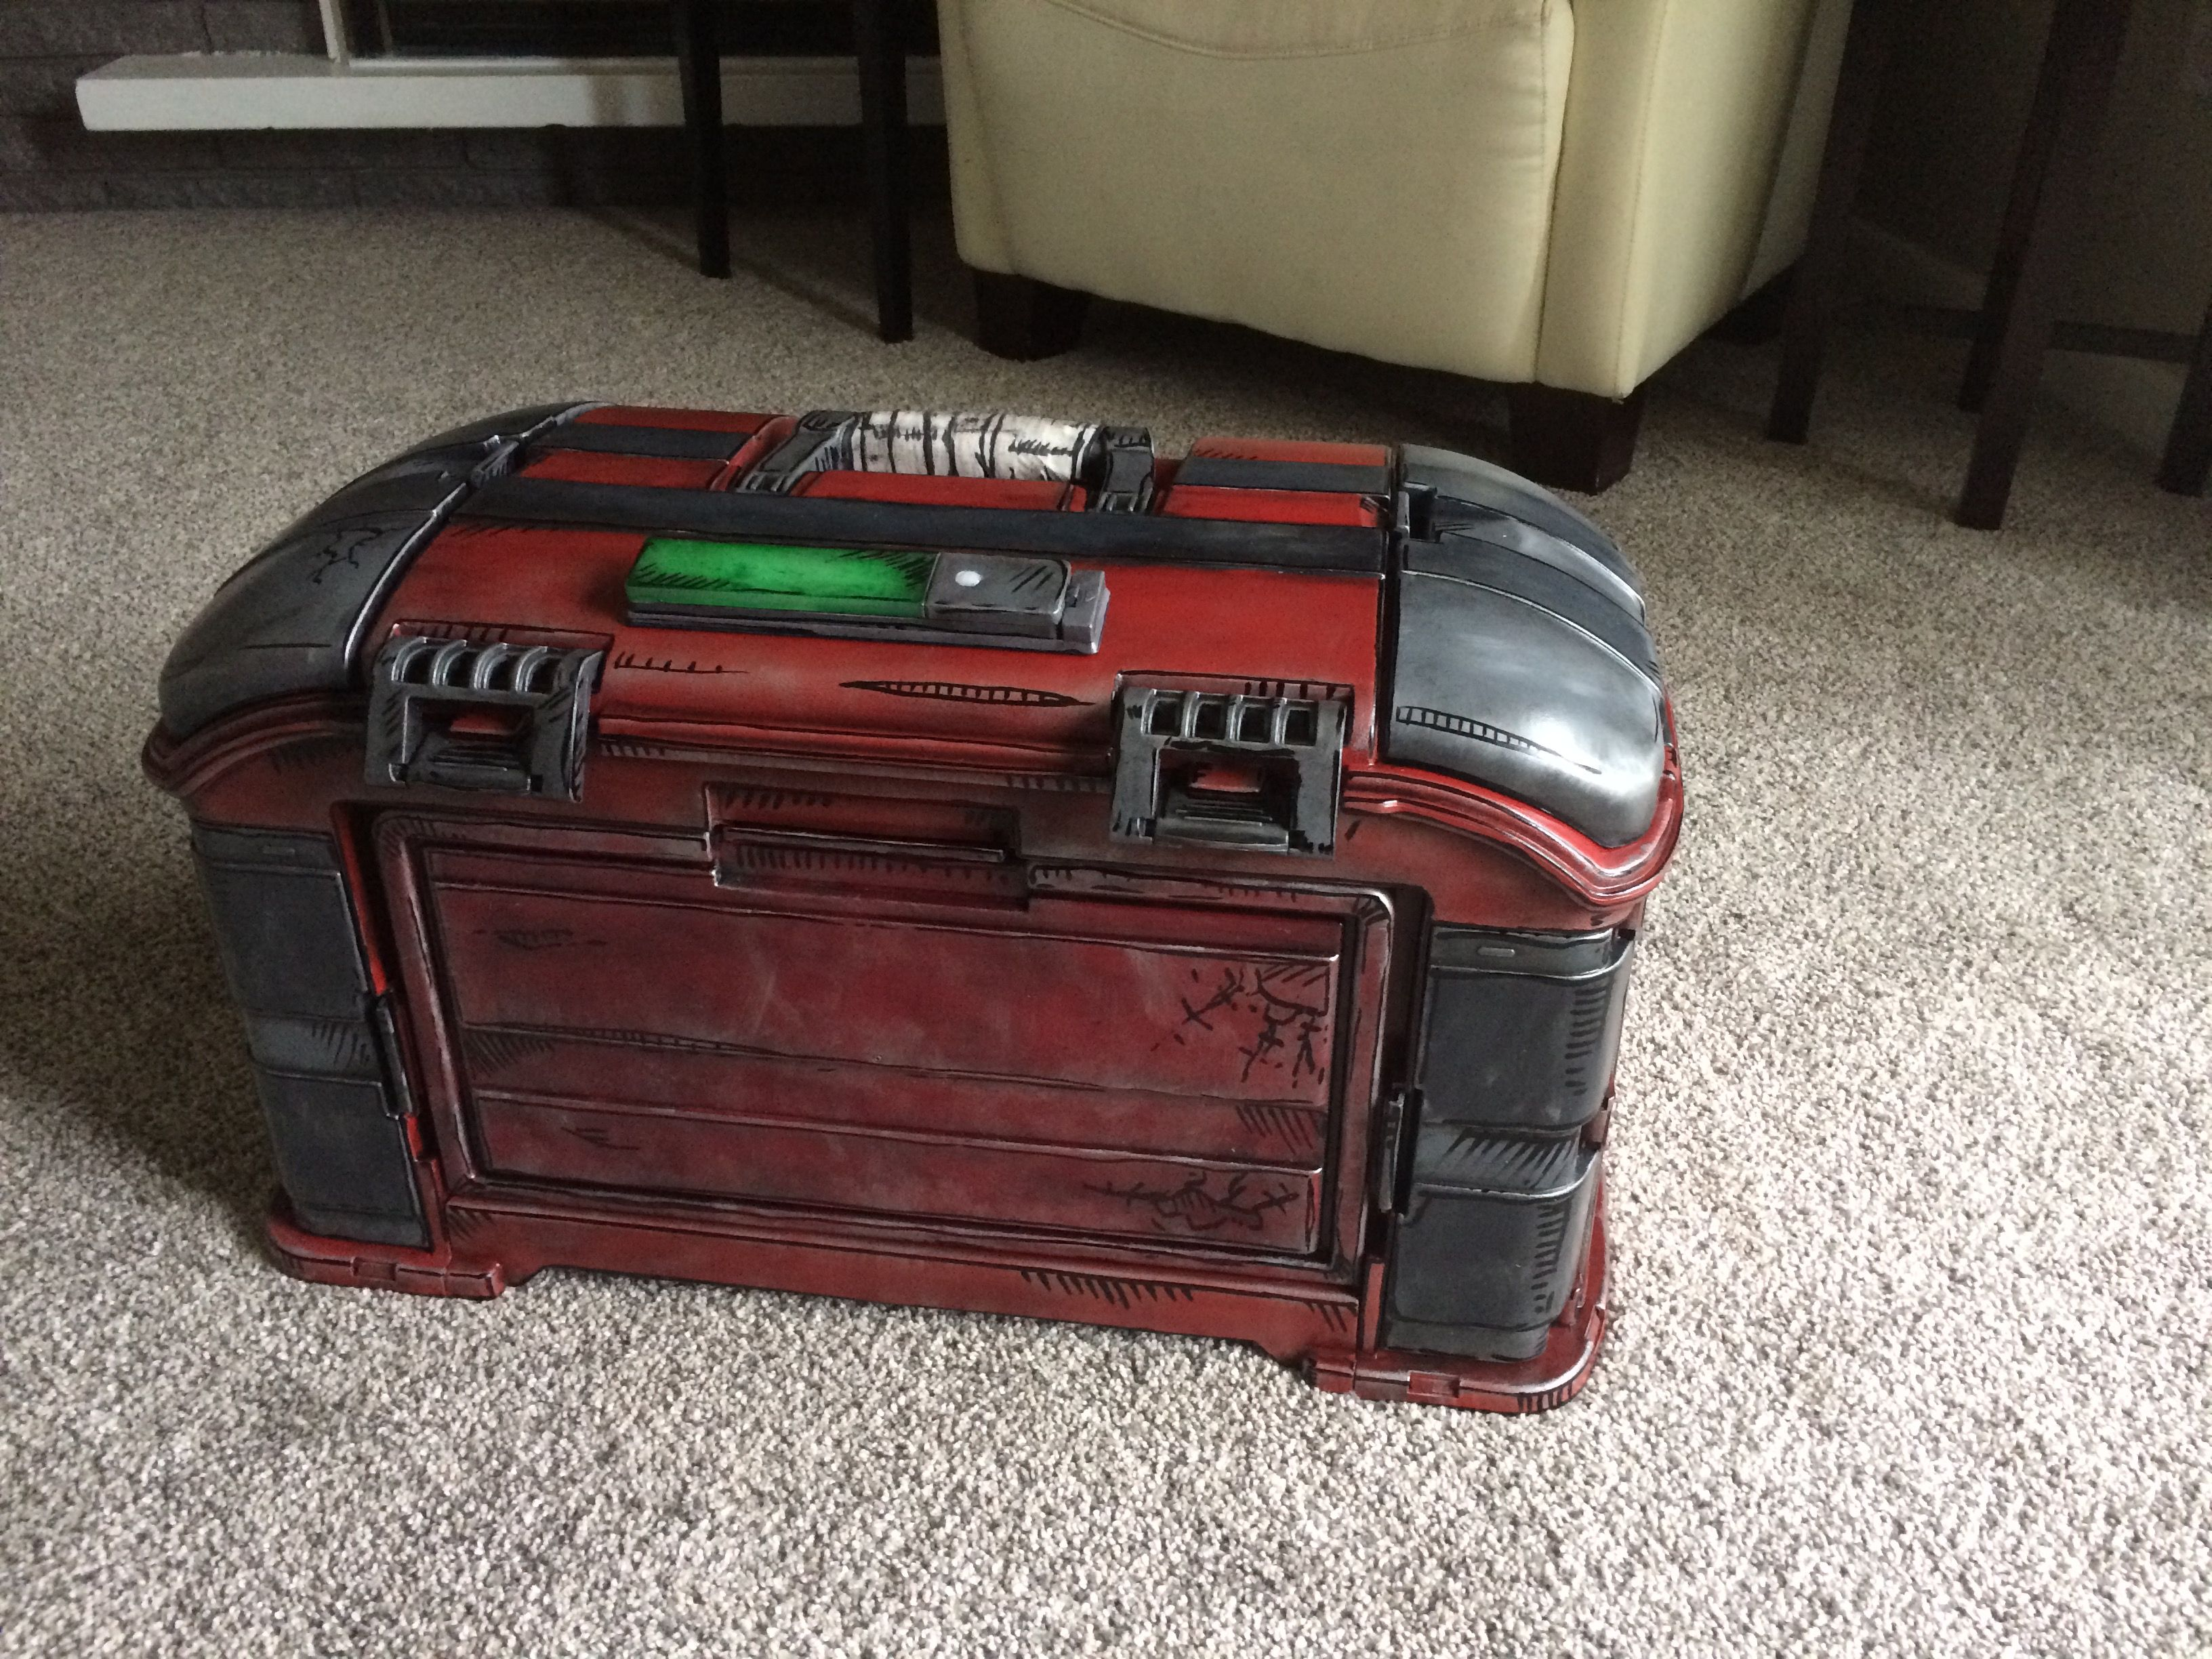 I modded a tackle / tool box to look like a Borderlands loot